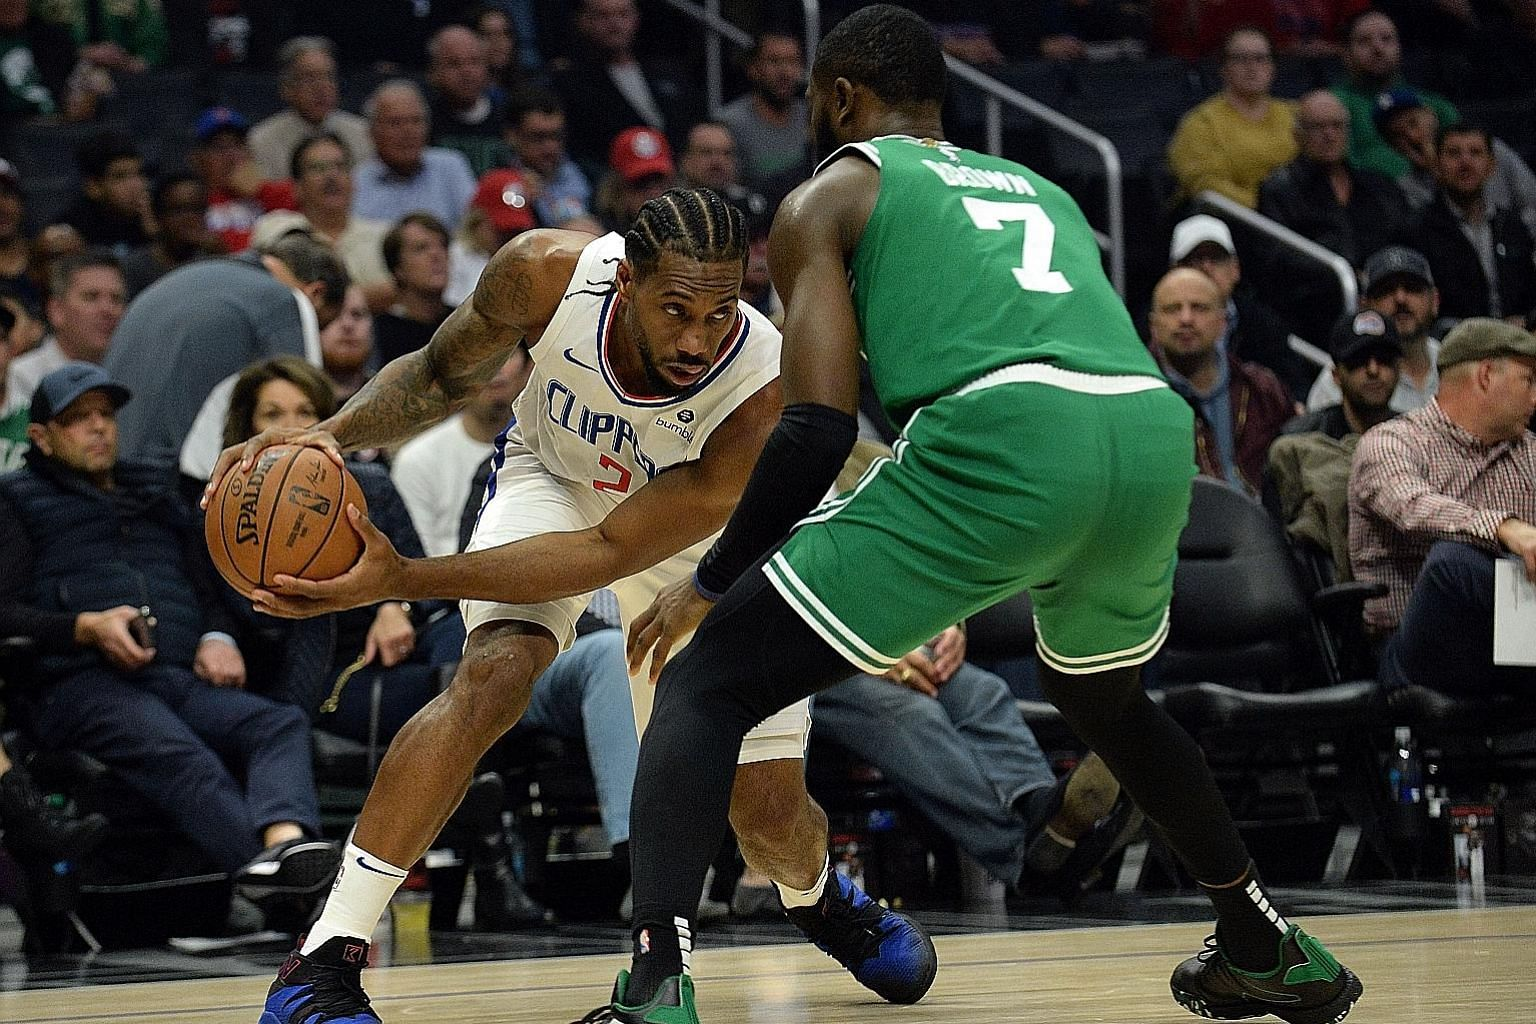 Left: Los Angeles Clippers forward Kawhi Leonard, last season's NBA Finals Most Valuable Player, goes up against Boston Celtics guard Jaylen Brown during the Clippers' 107-104 overtime win on Wednesday night. Below: Clippers forward Paul George shoot